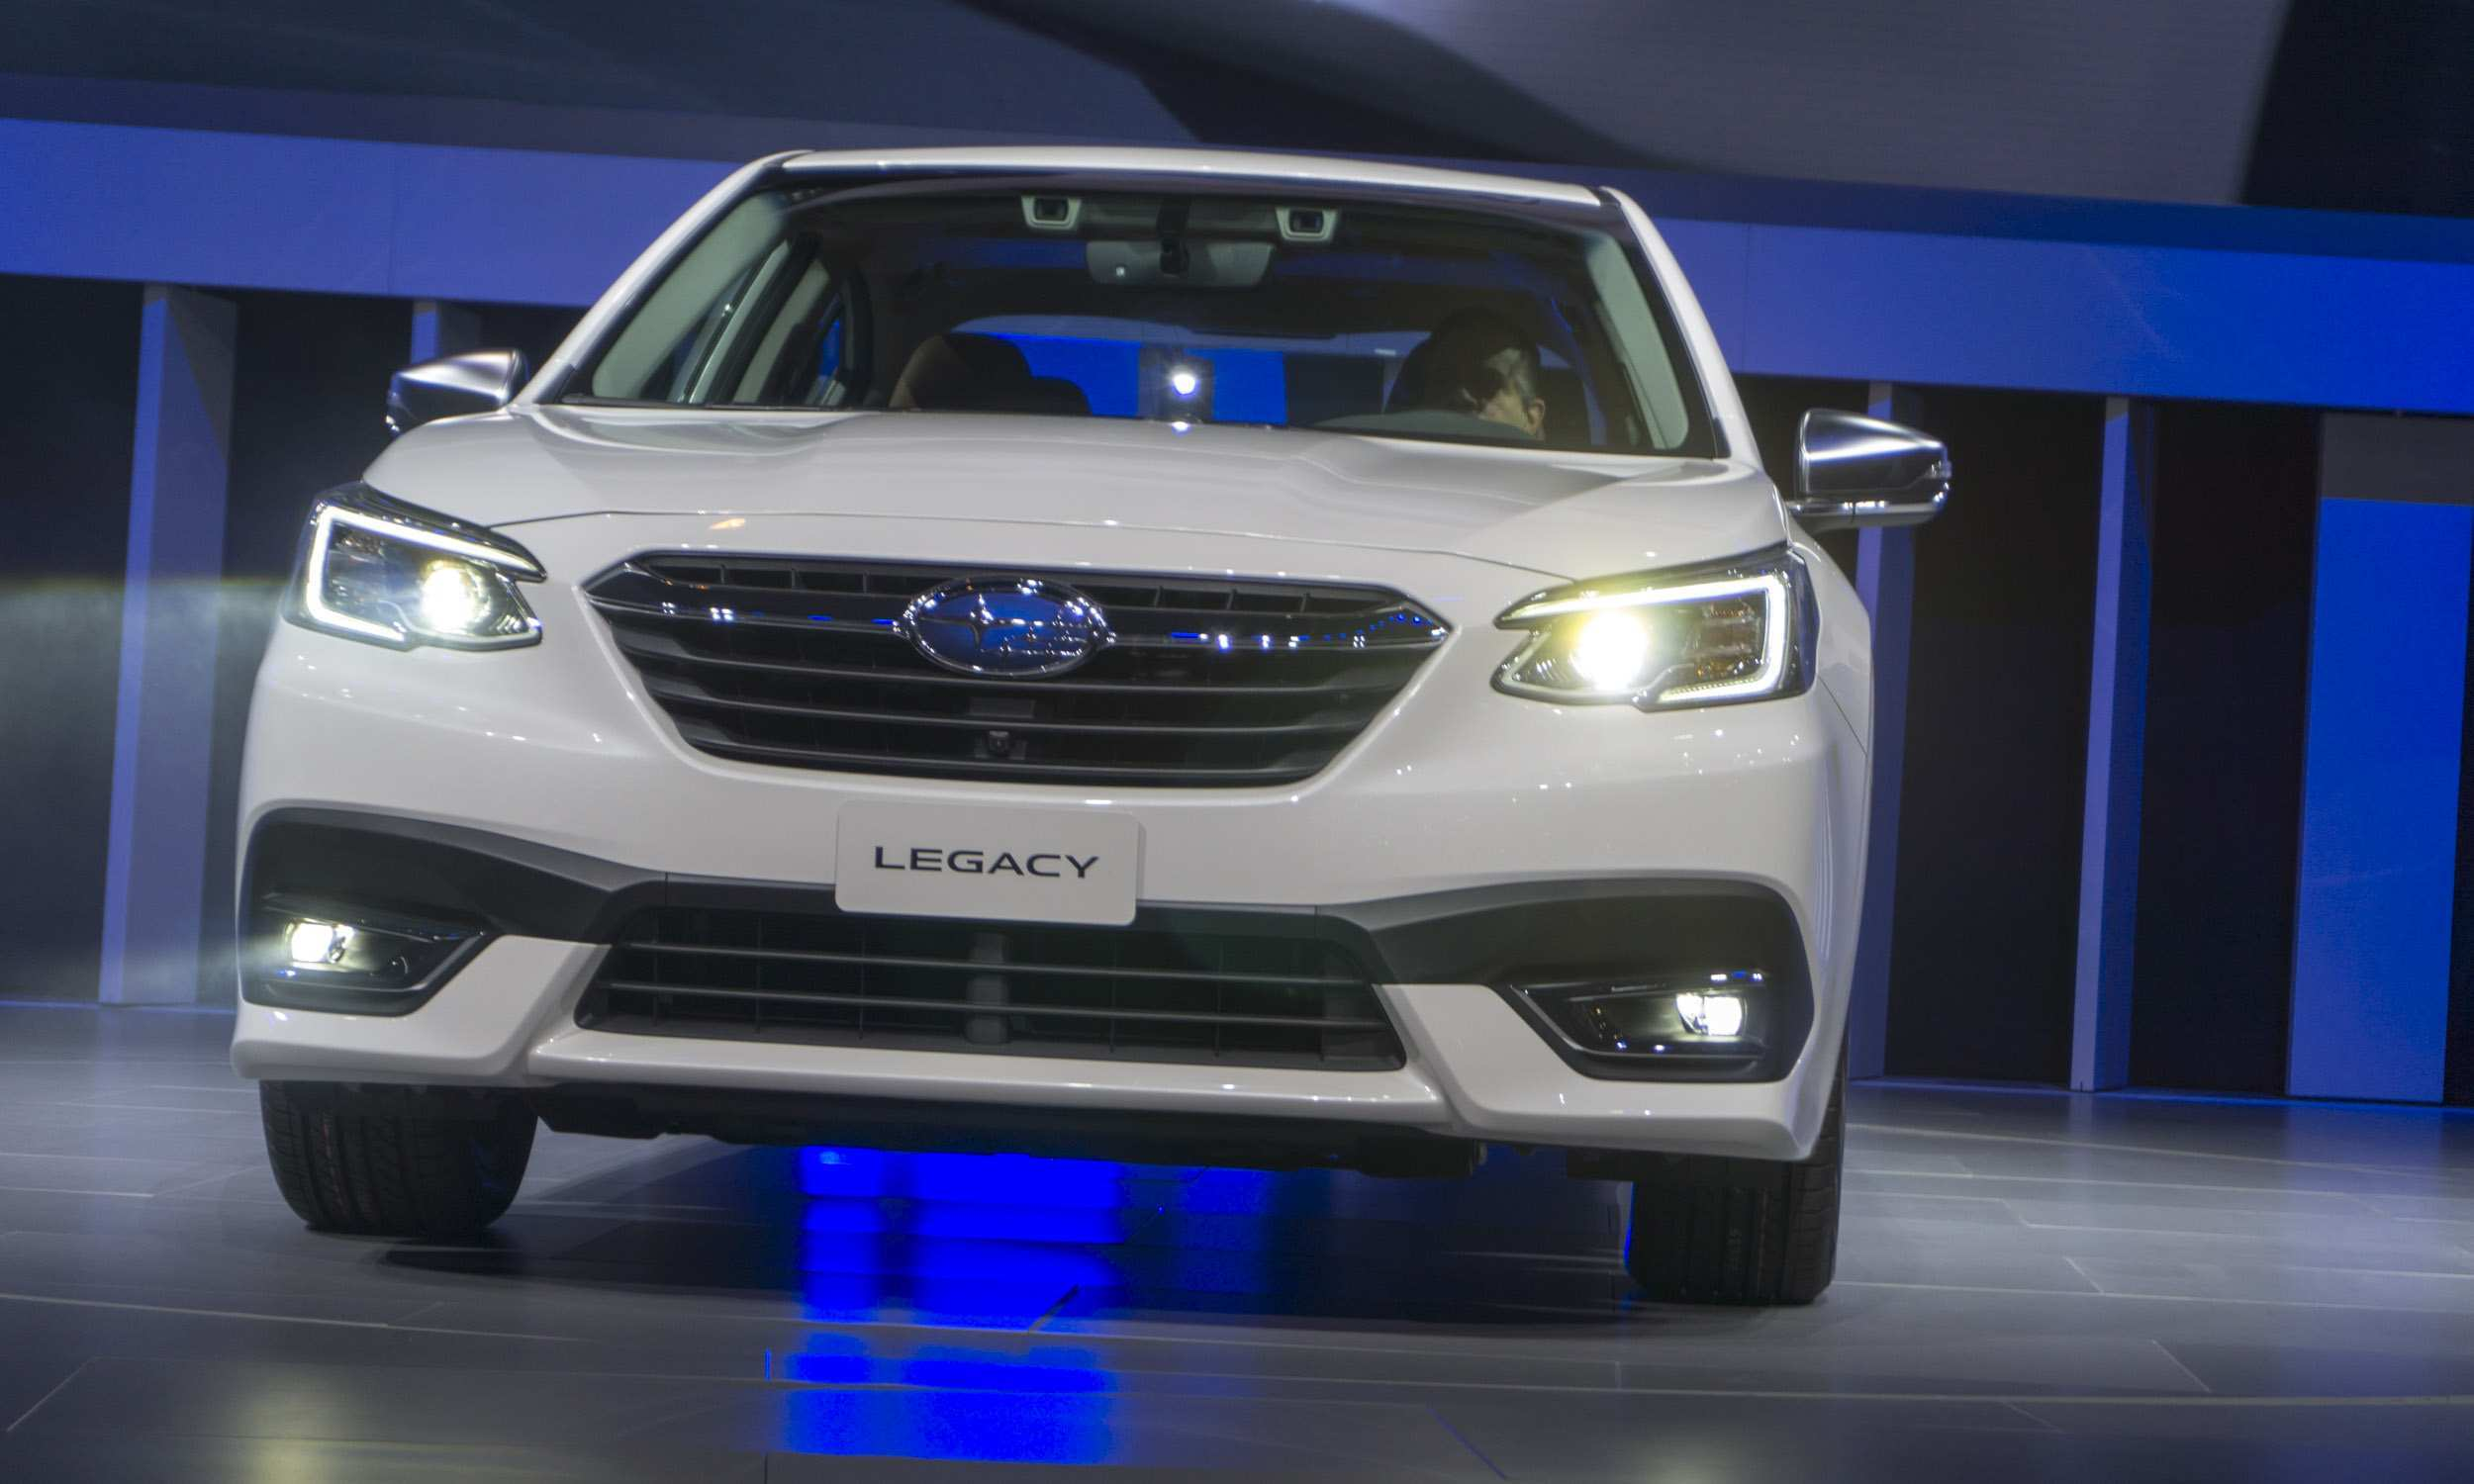 76 Great Subaru Legacy 2020 Japan New Review for Subaru Legacy 2020 Japan